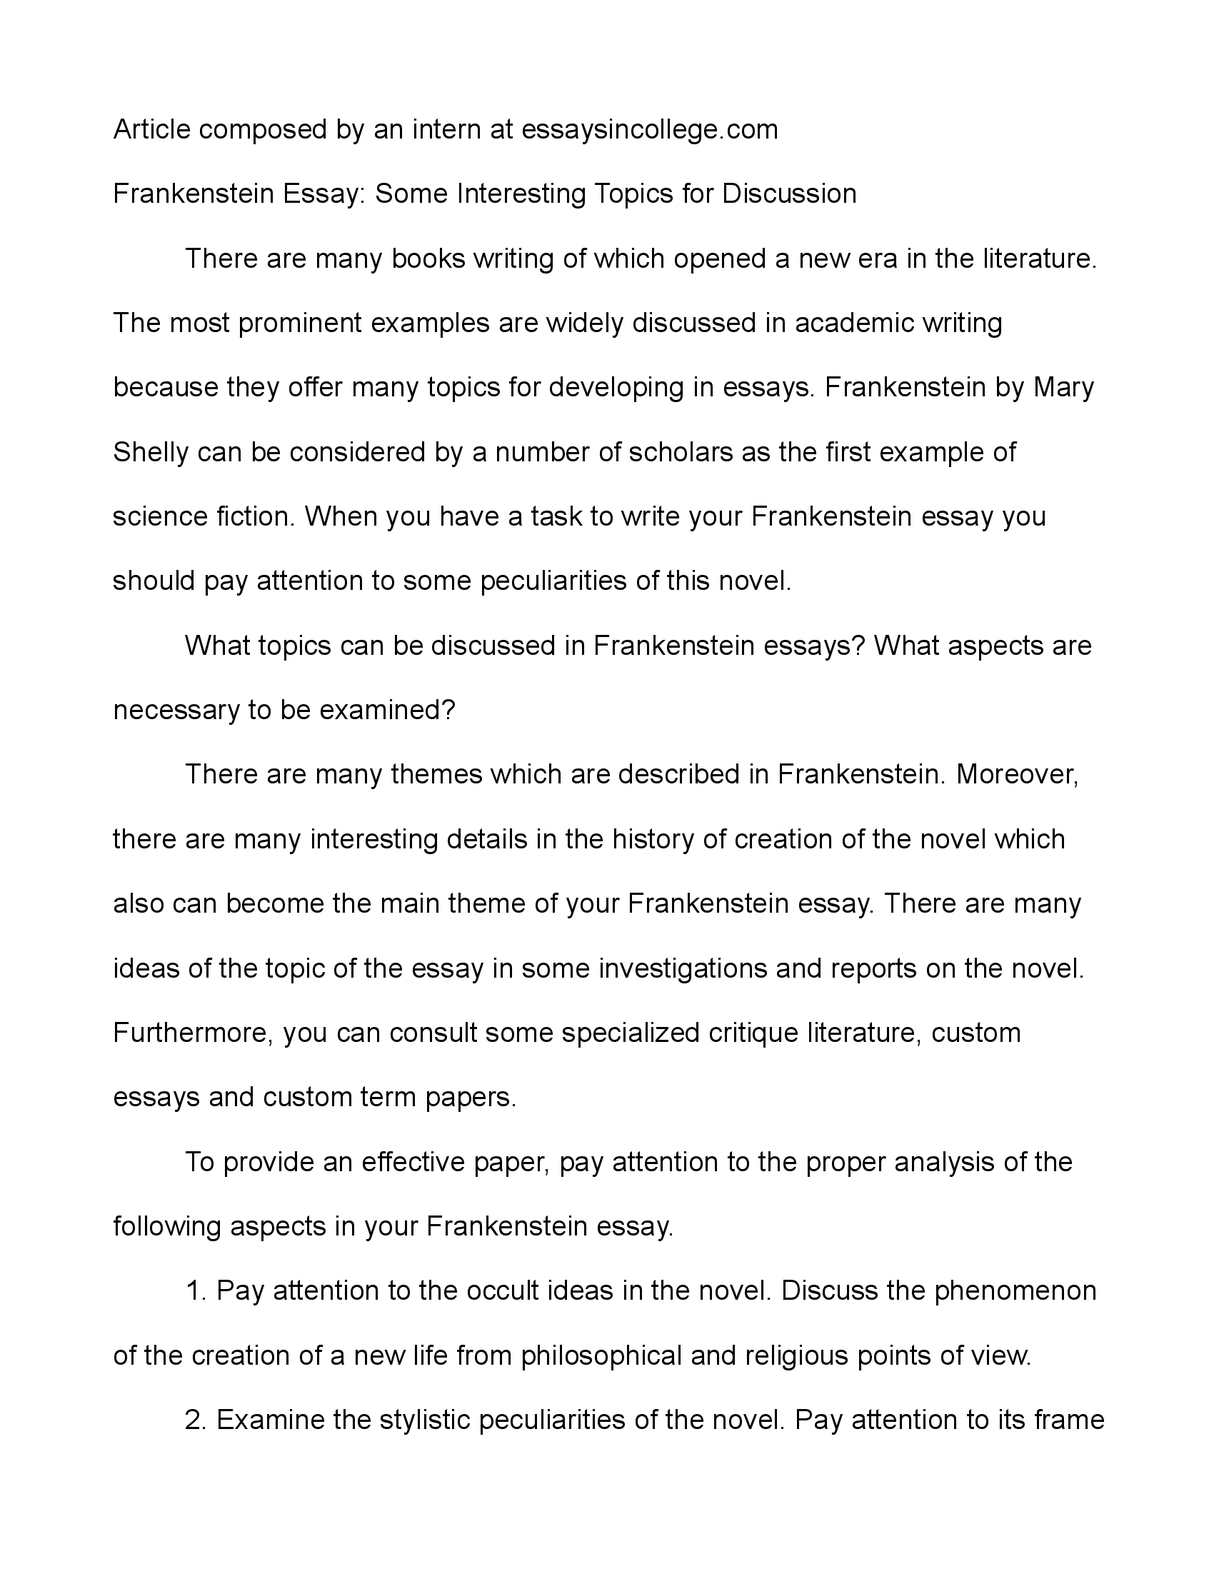 Uw Application Essay Sample on ra application essay, stanford application essay, osu application essay, ut application essay, uc application essay, iu application essay, uf application essay,